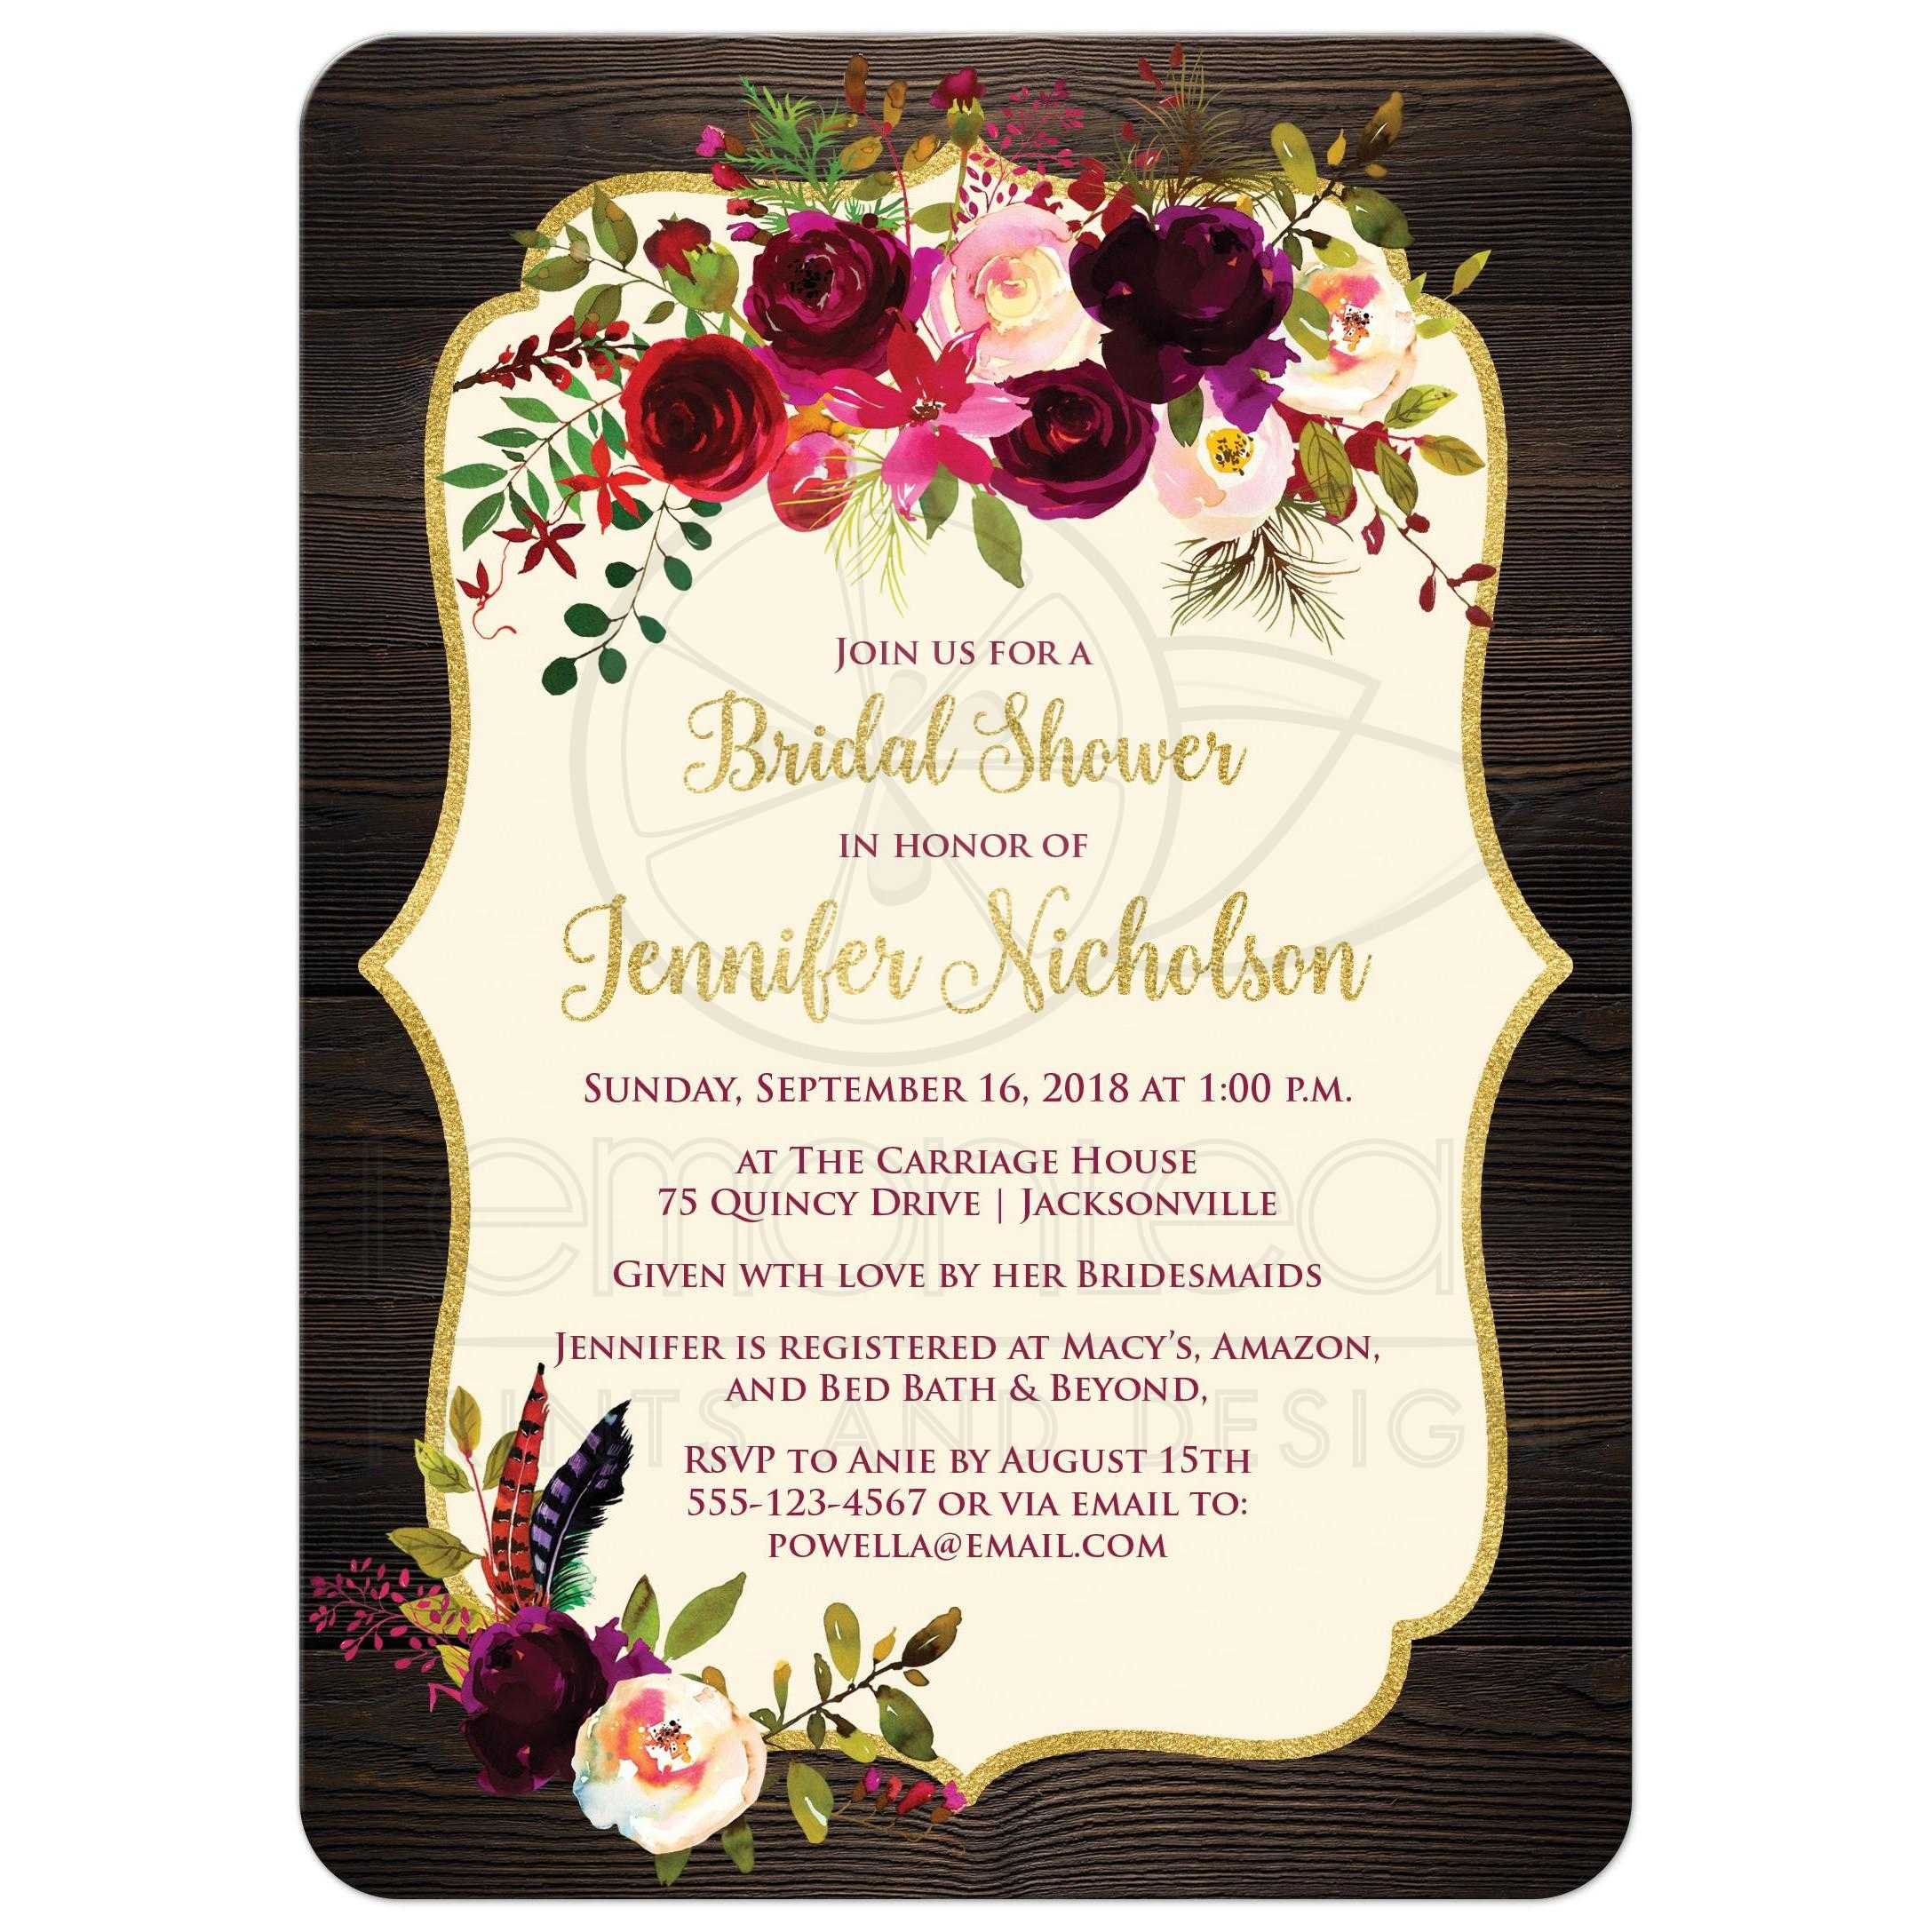 Rustic Boho Elegance Bridal Shower Invitation